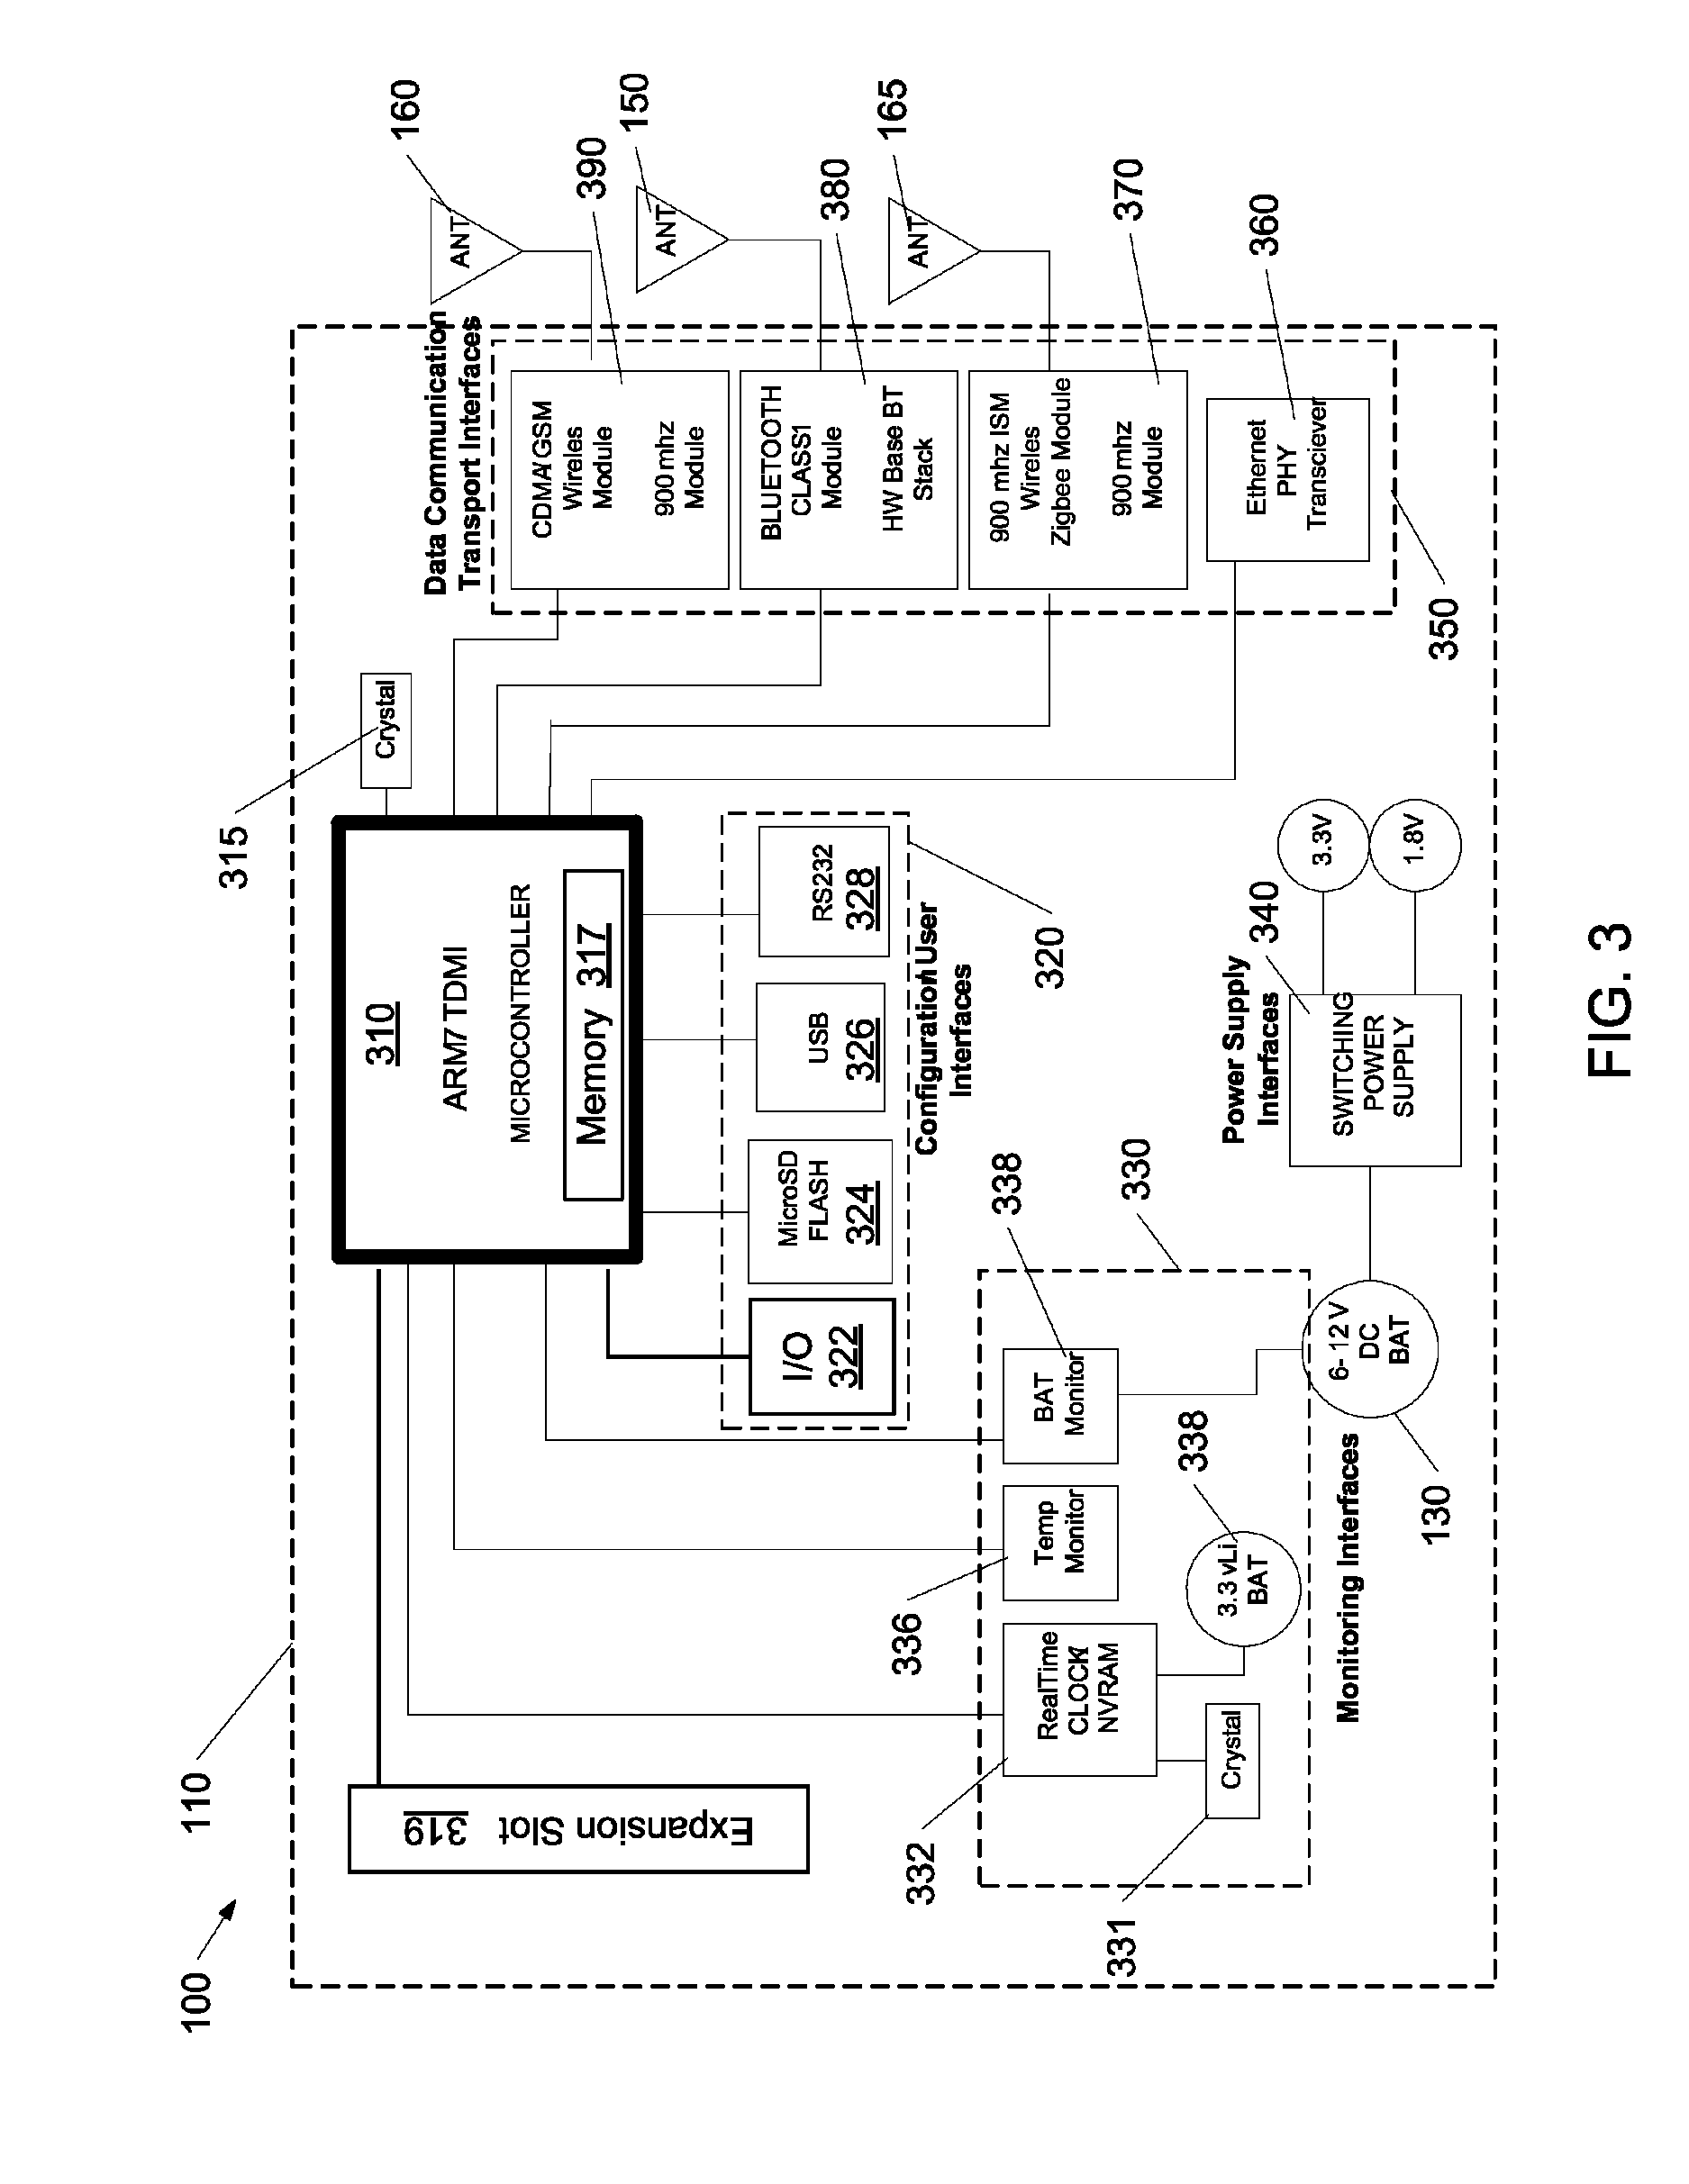 patent us8510025 method and system for a traffic management network patents